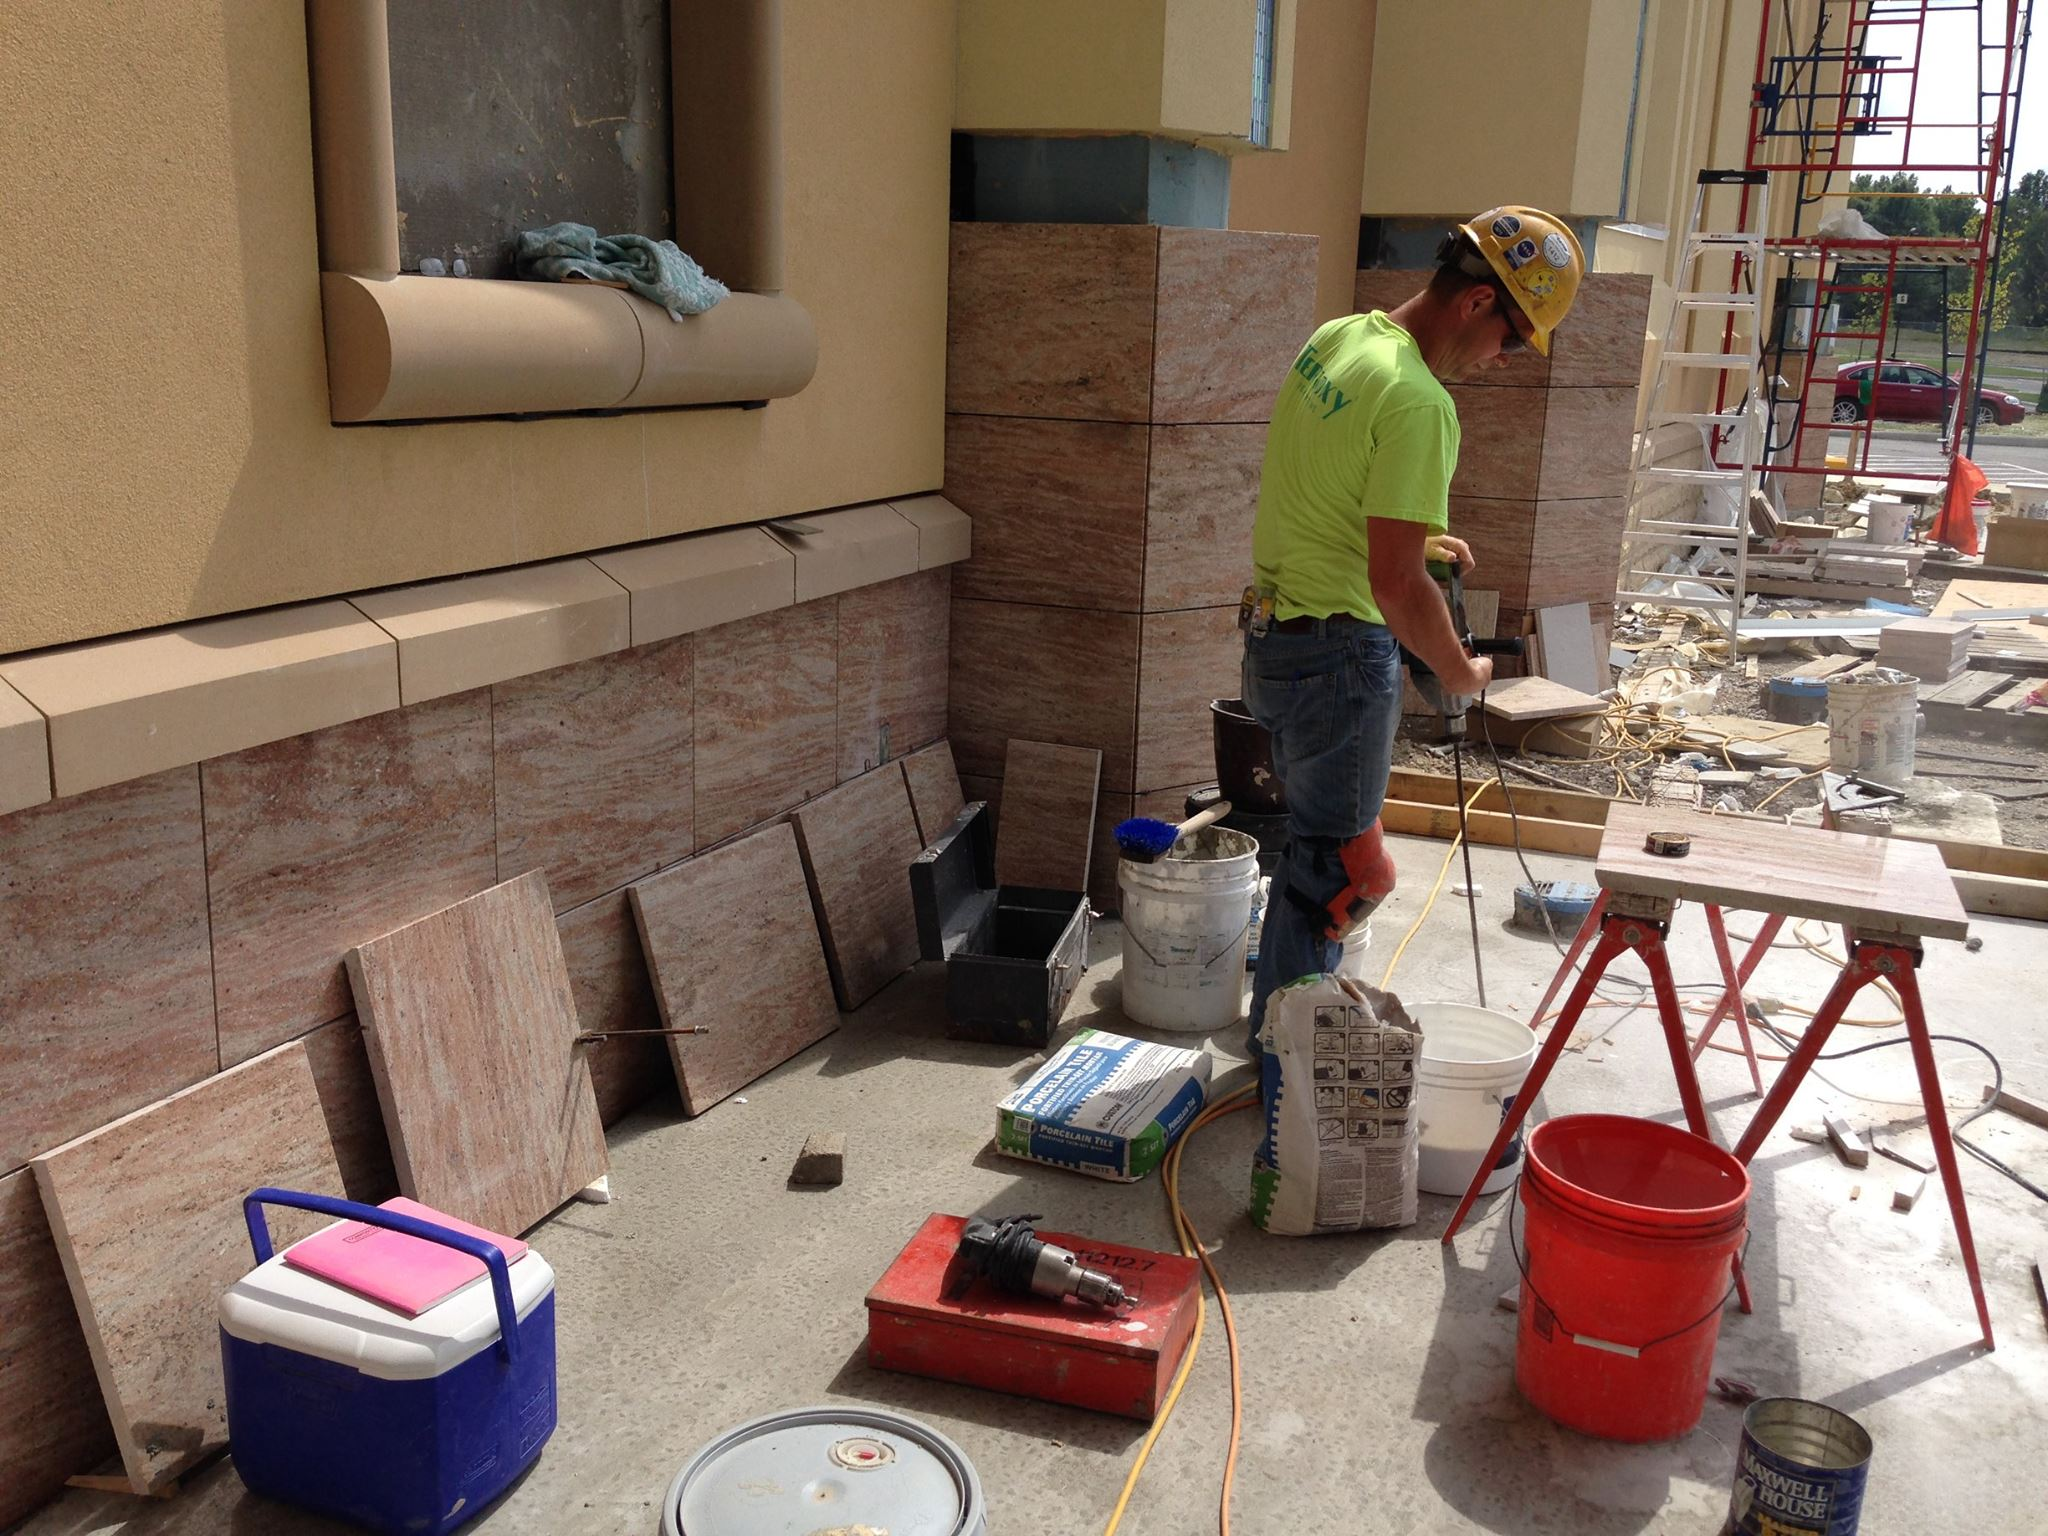 This image depicts a large commercial tile project in Austintown, Ohio. The tile and terrazzo facade of the Austintown Racino was completed by experts Youngstown Tile and Terrazzo.